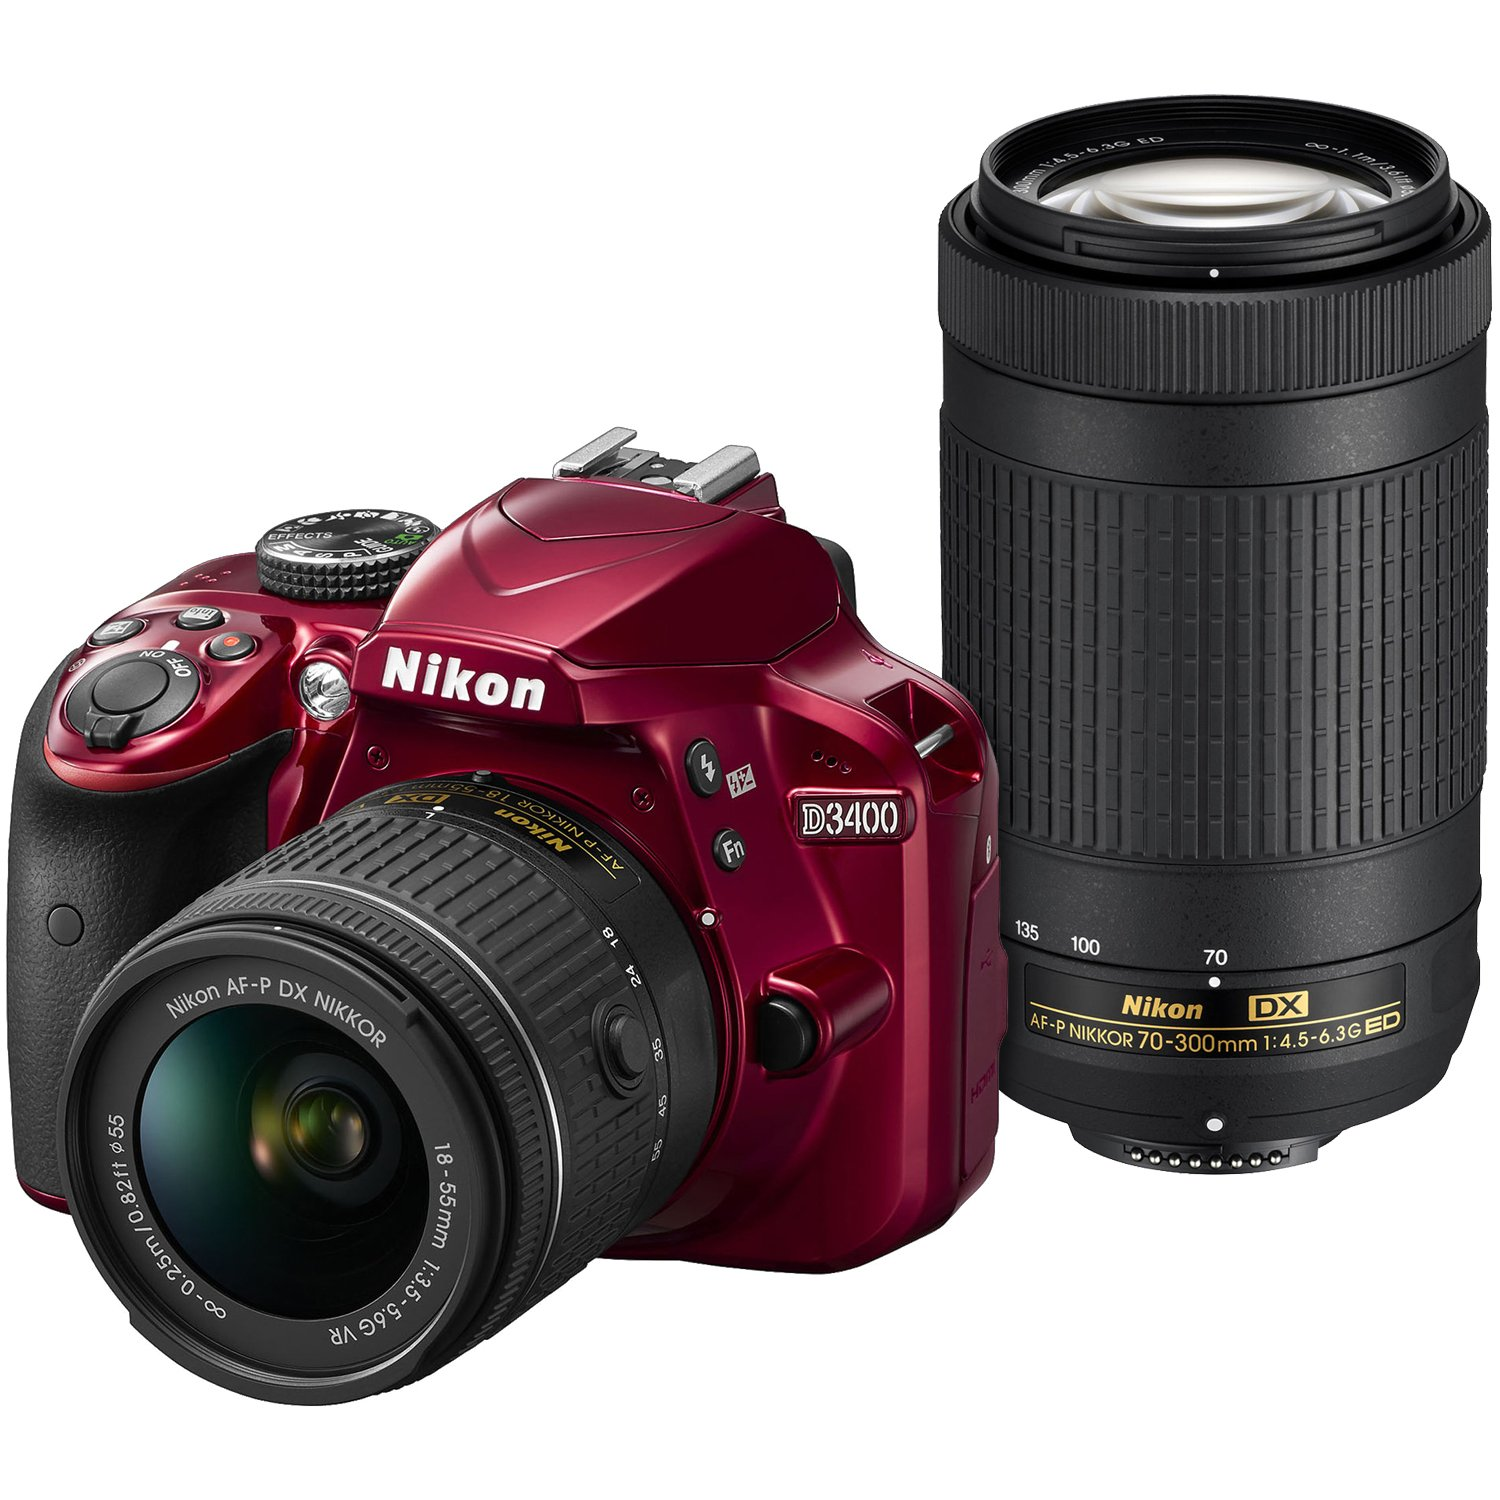 Nikon D3400 Digital SLR Camera & 18-55mm VR & 70-300mm DX AF-P Lenses (Red) - (Certified Refurbished)